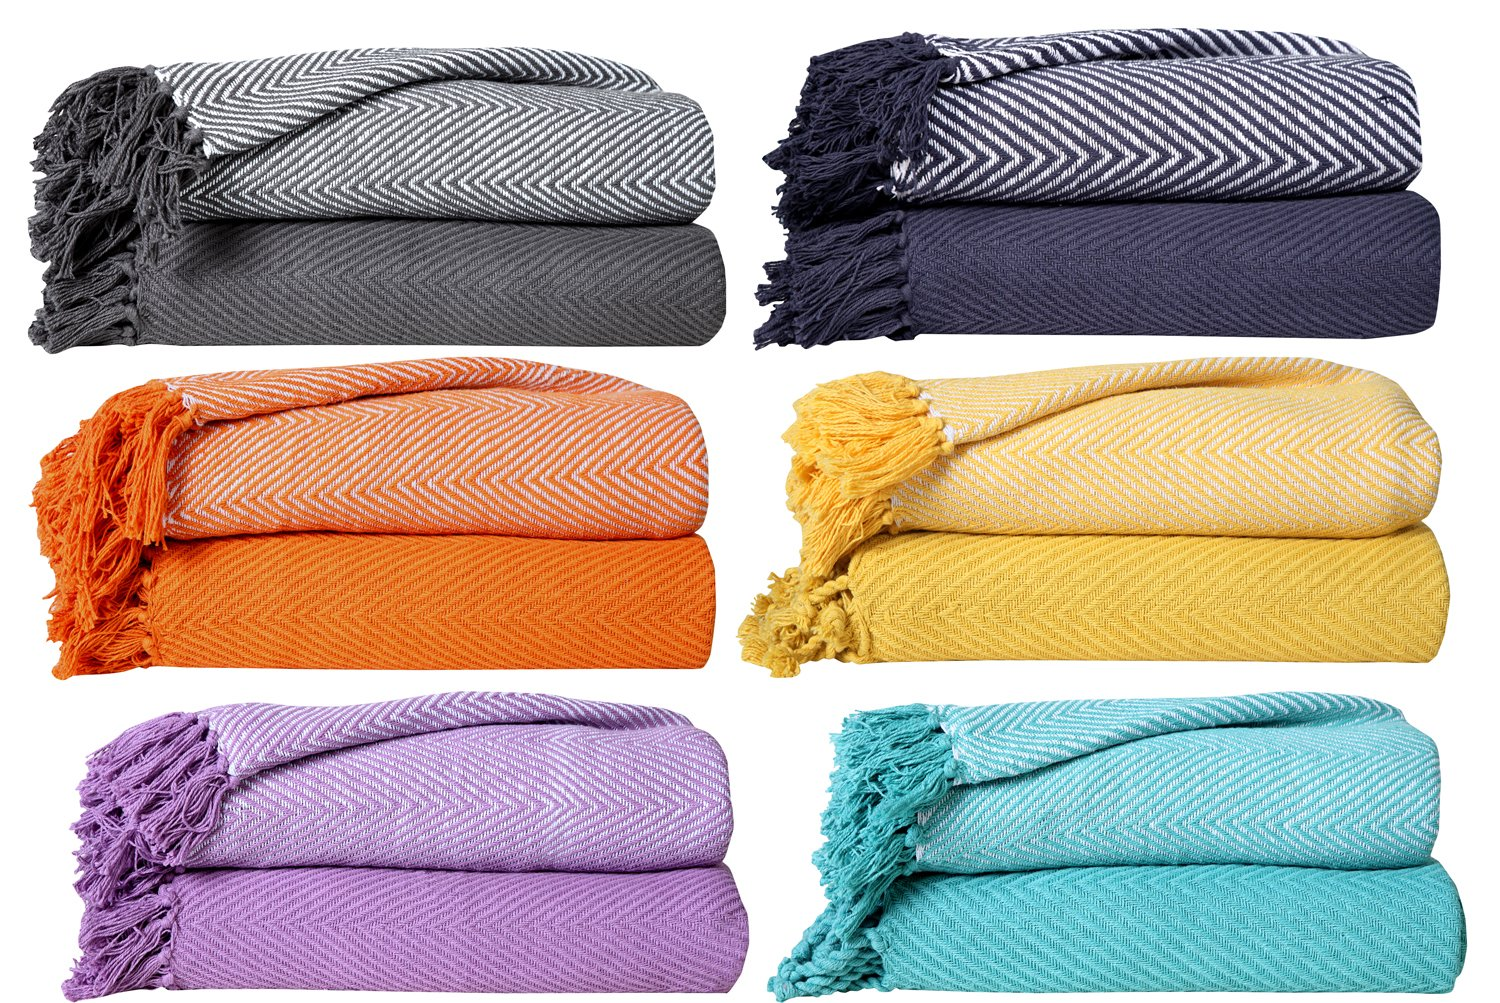 100% Cotton Throw Blanket- PACK OF 2 - Chevron Throws Blankets For Sofa & Couch - Super Soft Cotton Throw Blankets - Sofa Couch Throws Blankets - 50 x 60 inch Indoor / Outdoor Coral Throws blankets